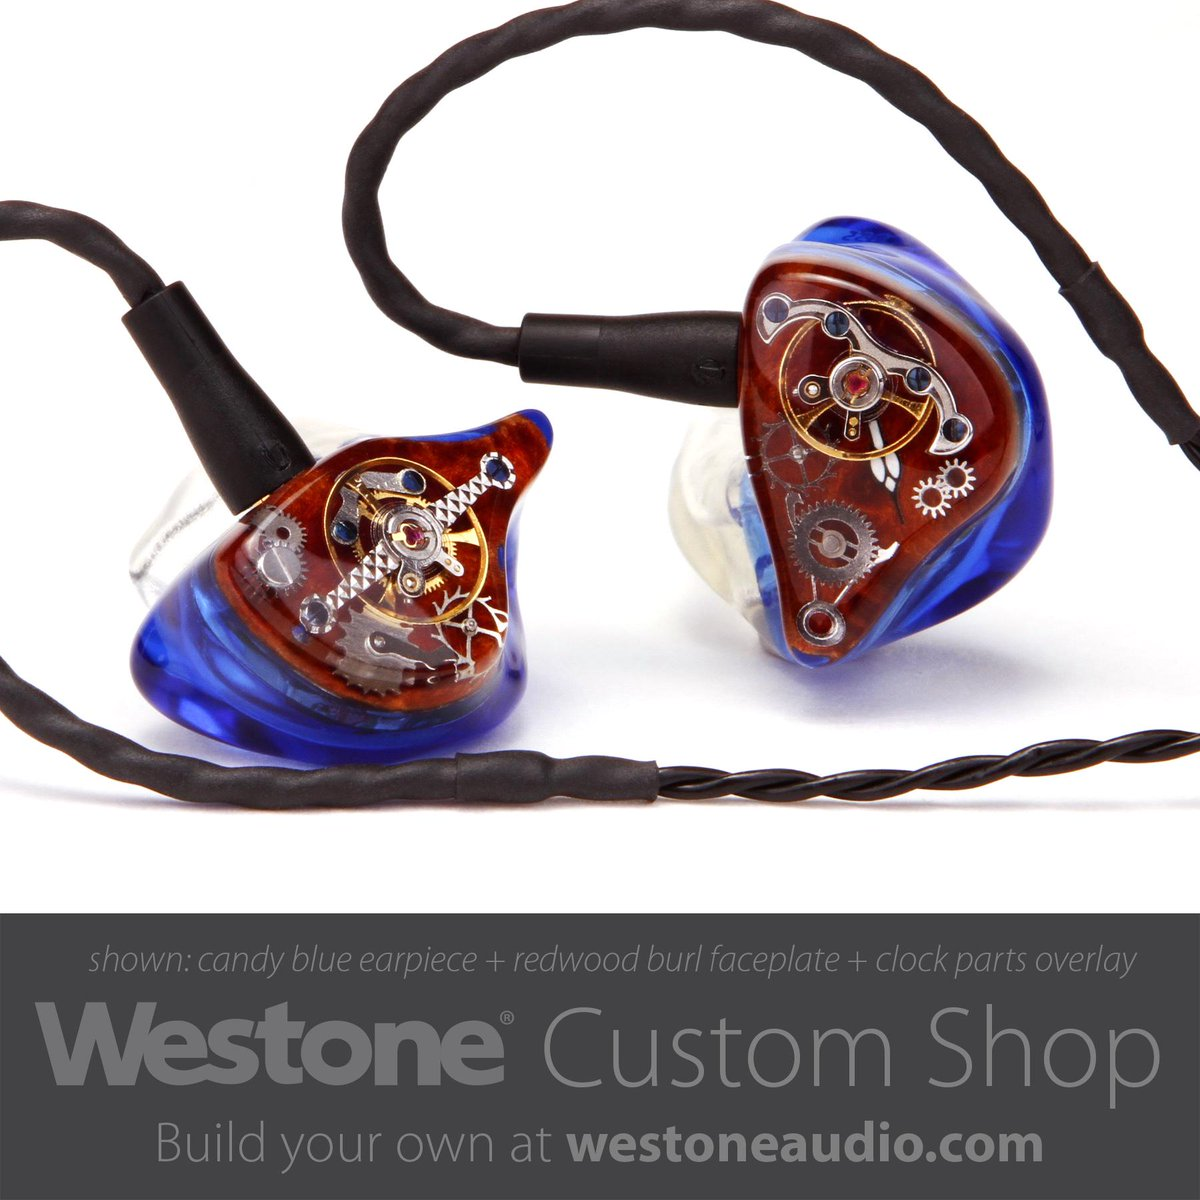 The #custom shop does it again with these incrediable clock inlay #inears  #IEM http://t.co/5wRoGmDiyk